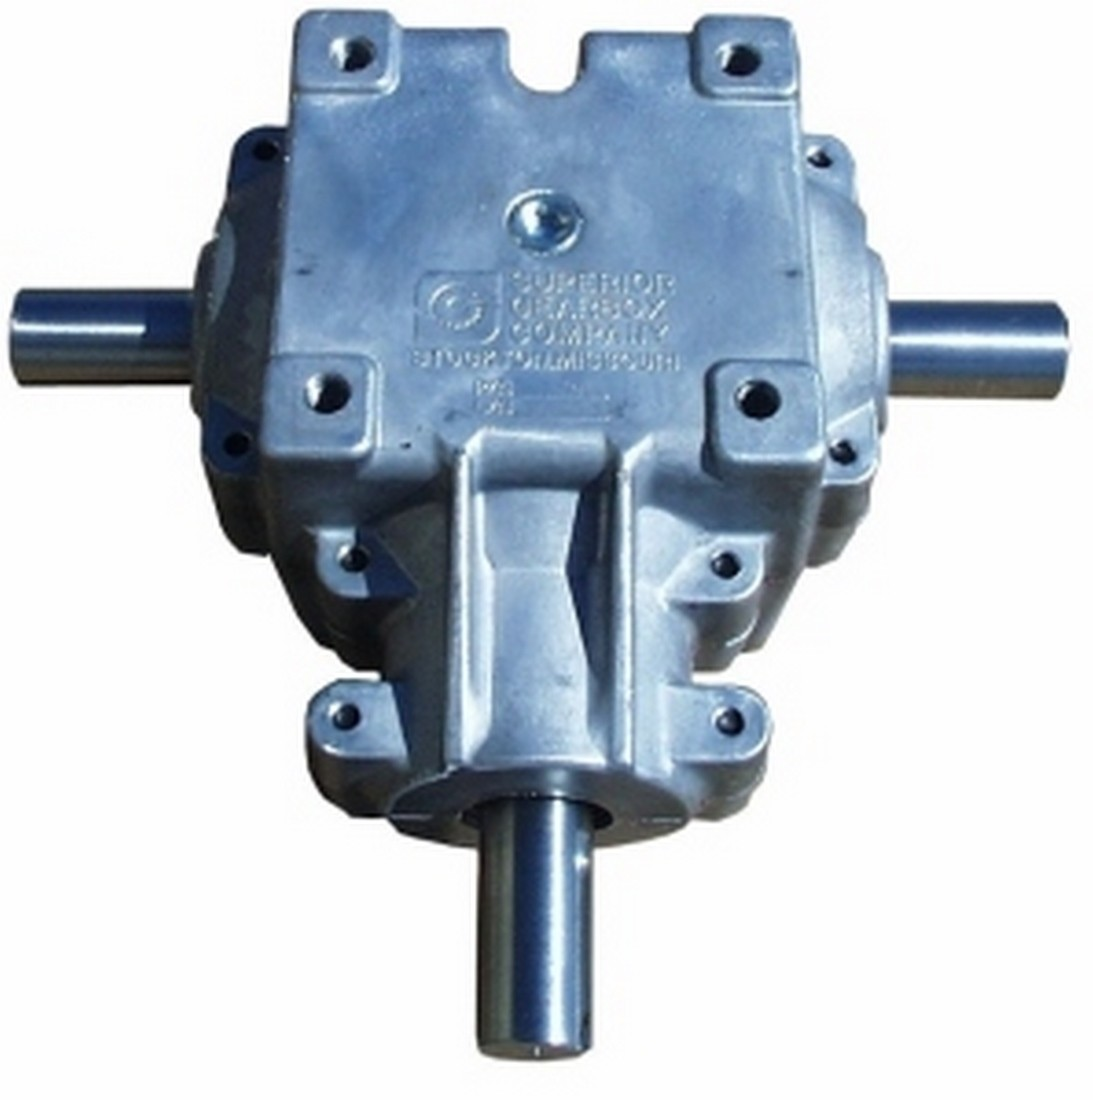 3 SHAFT GEARBOX 1:1 RATIO - 400 SERIES WITH 1 1/4 SHAFT